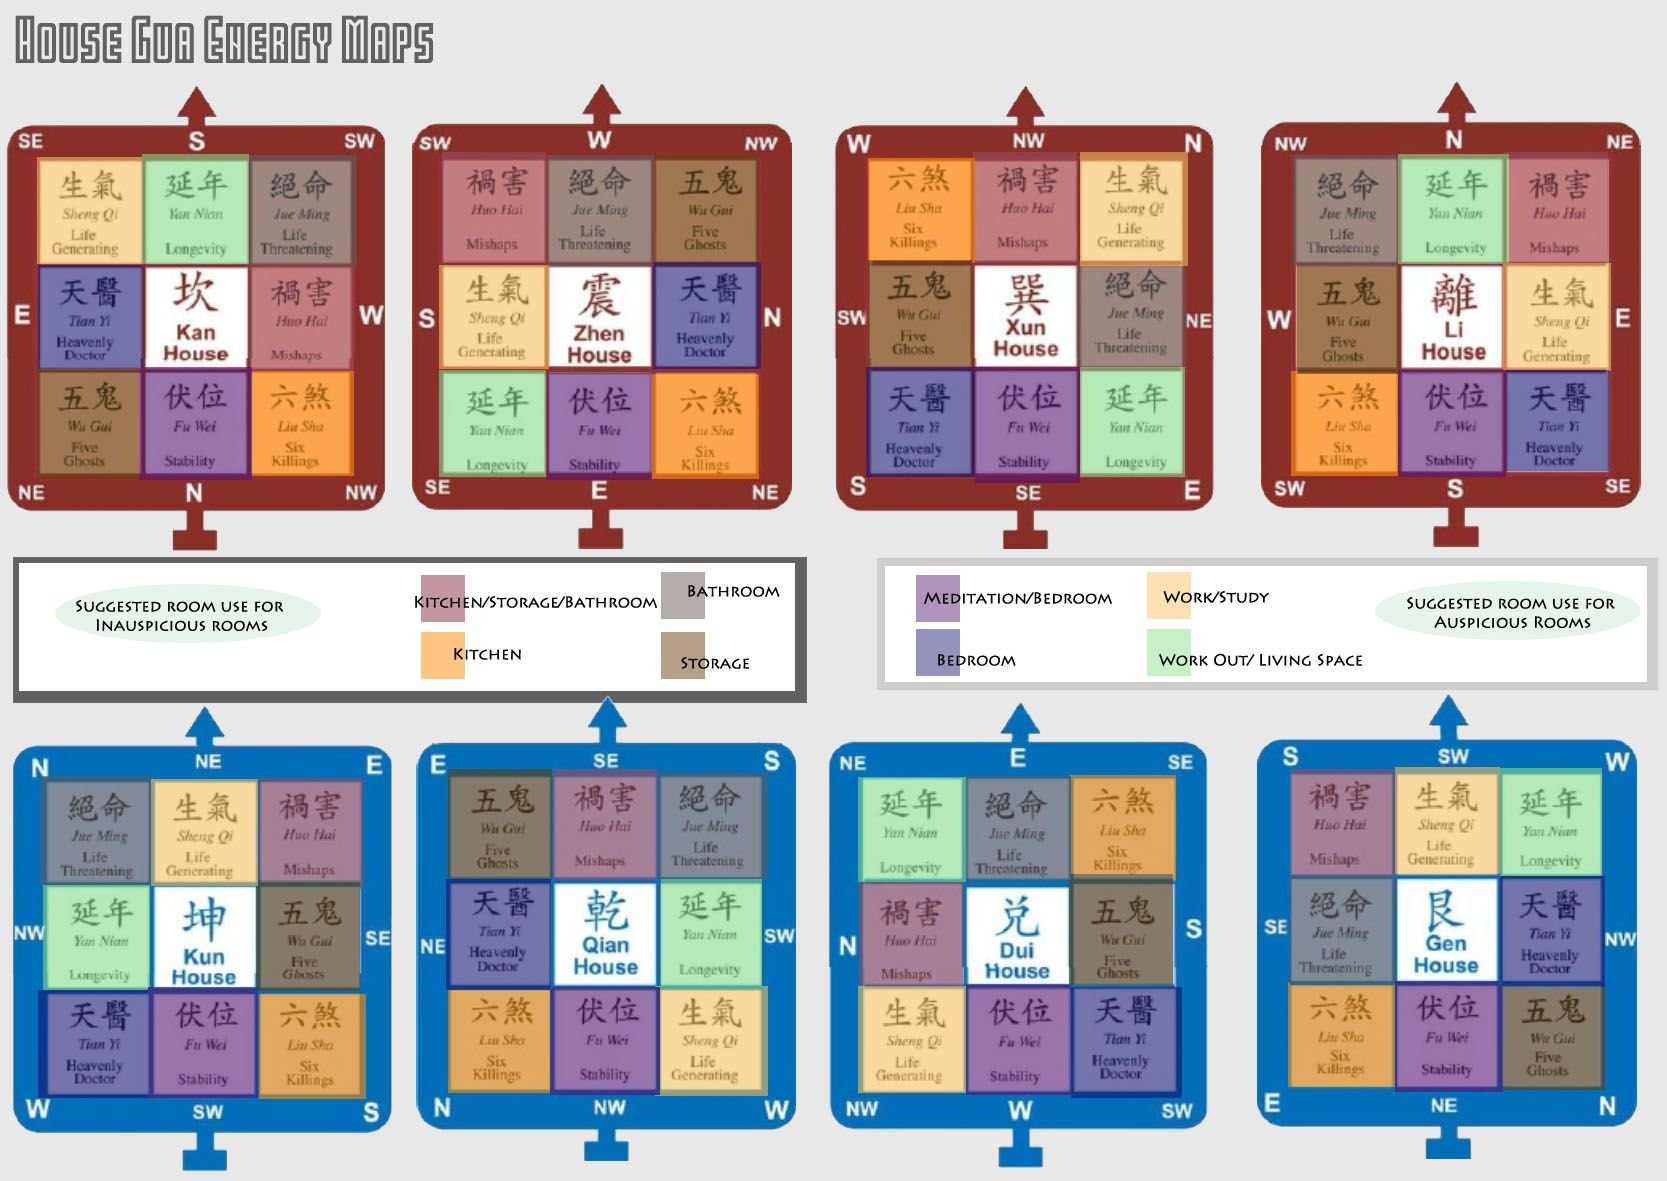 house gua energy maps. feng shui cheat sheet for suggested room use.